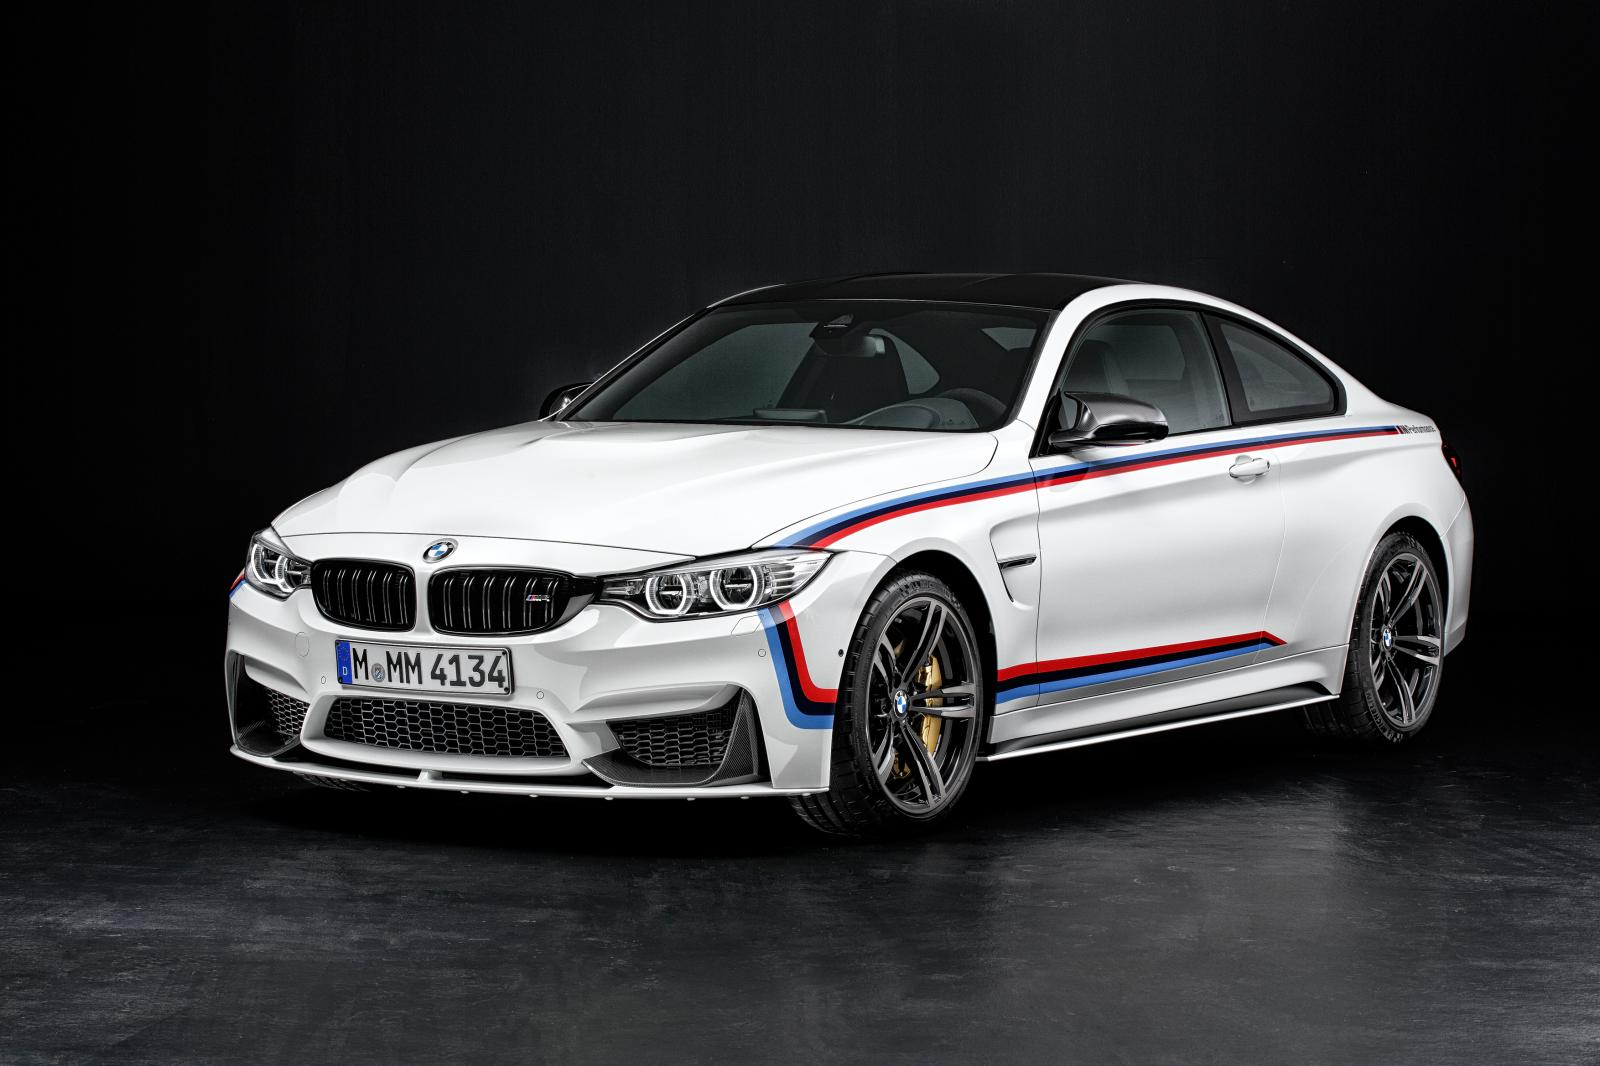 m performance parts revealed for bmw m4 and m3 gtspirit. Cars Review. Best American Auto & Cars Review